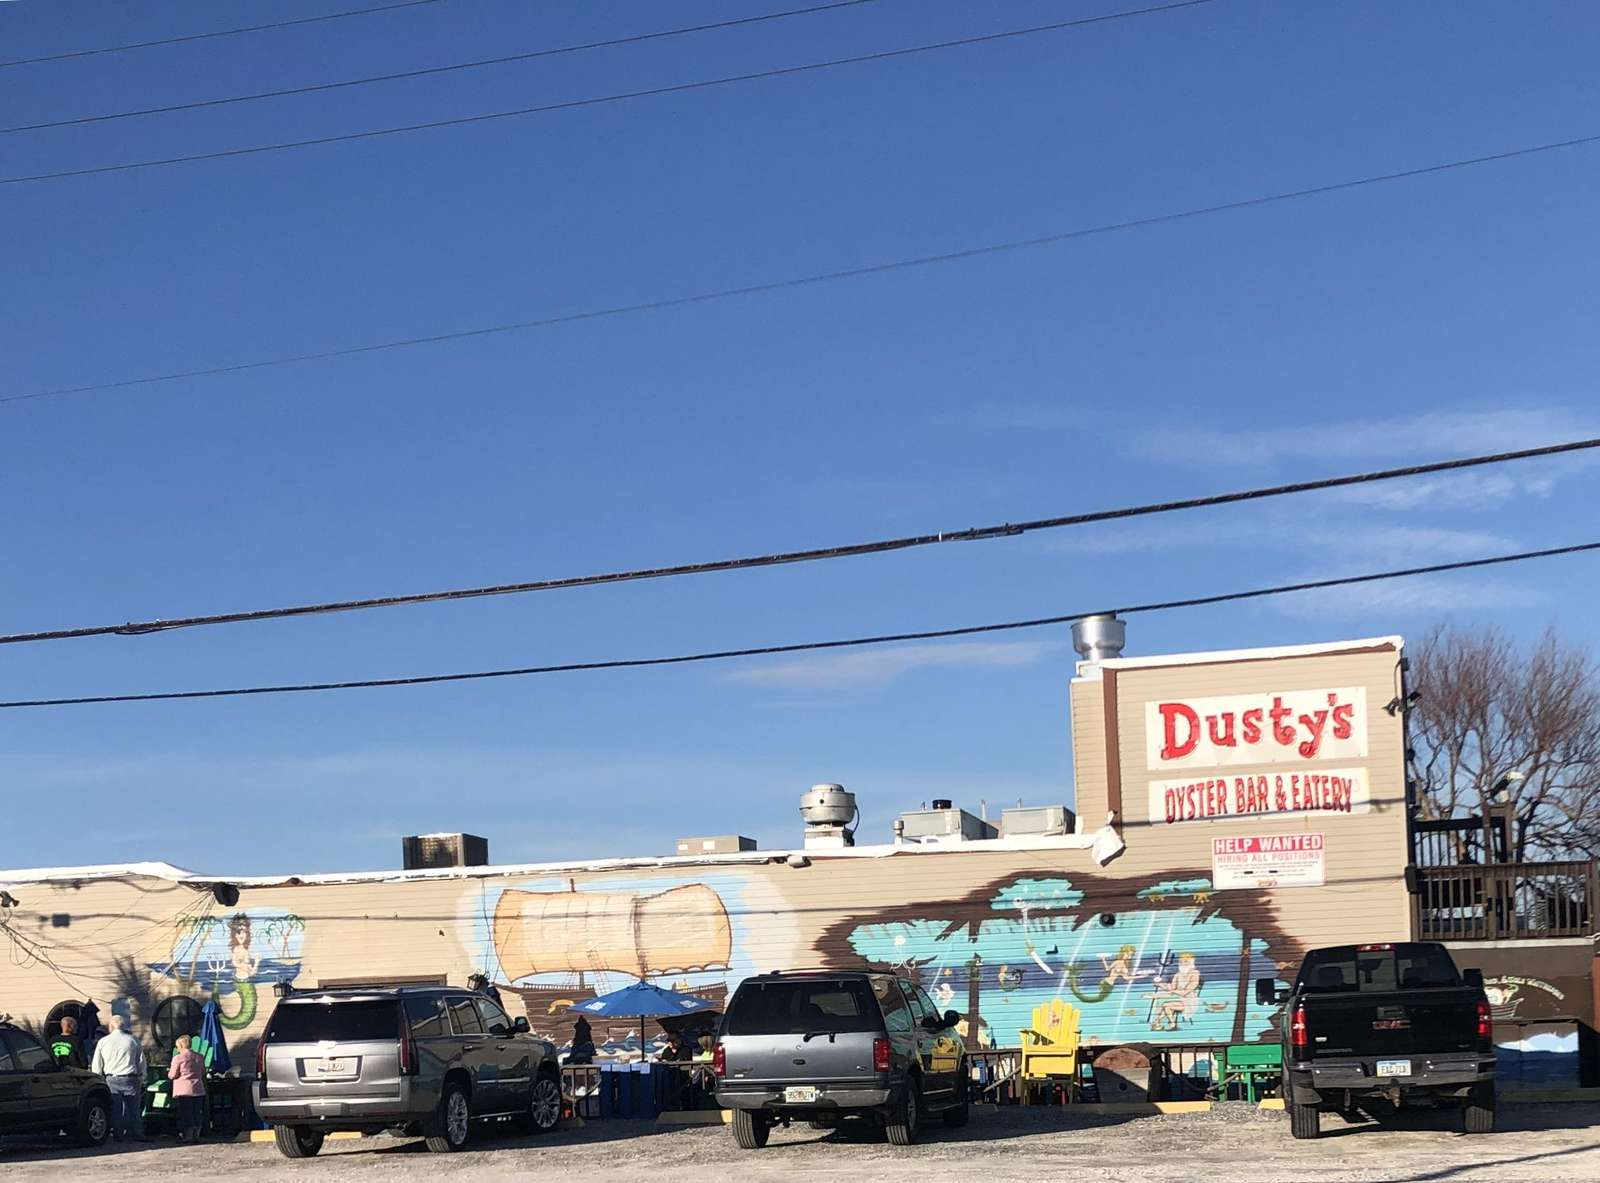 Dusty oyster bar with fresh seafood is across the street